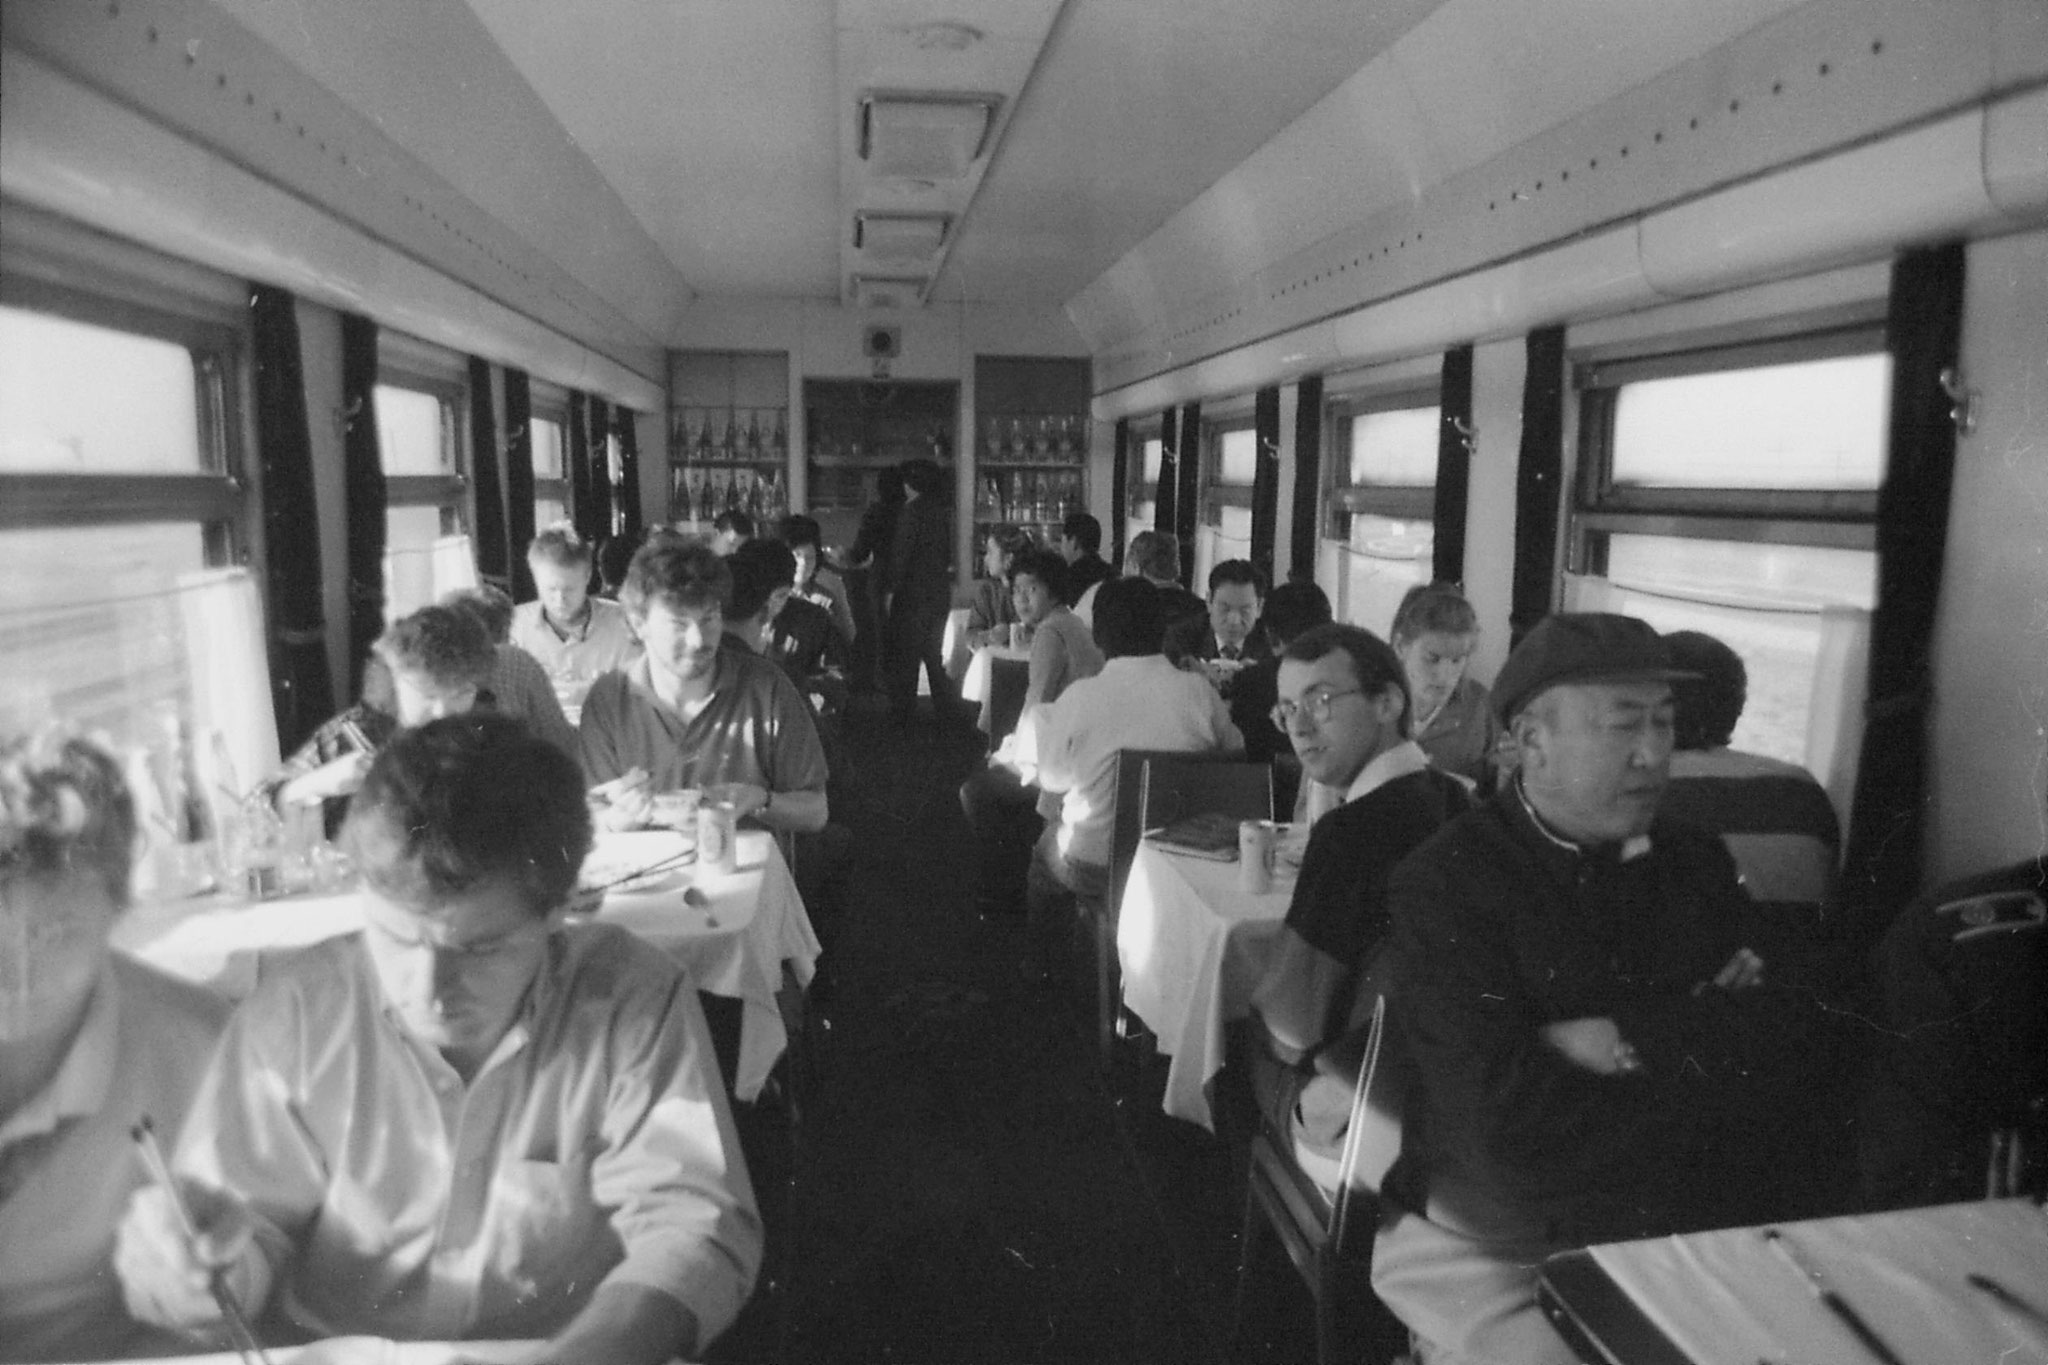 27/10/1988: 21: Chinese dining car